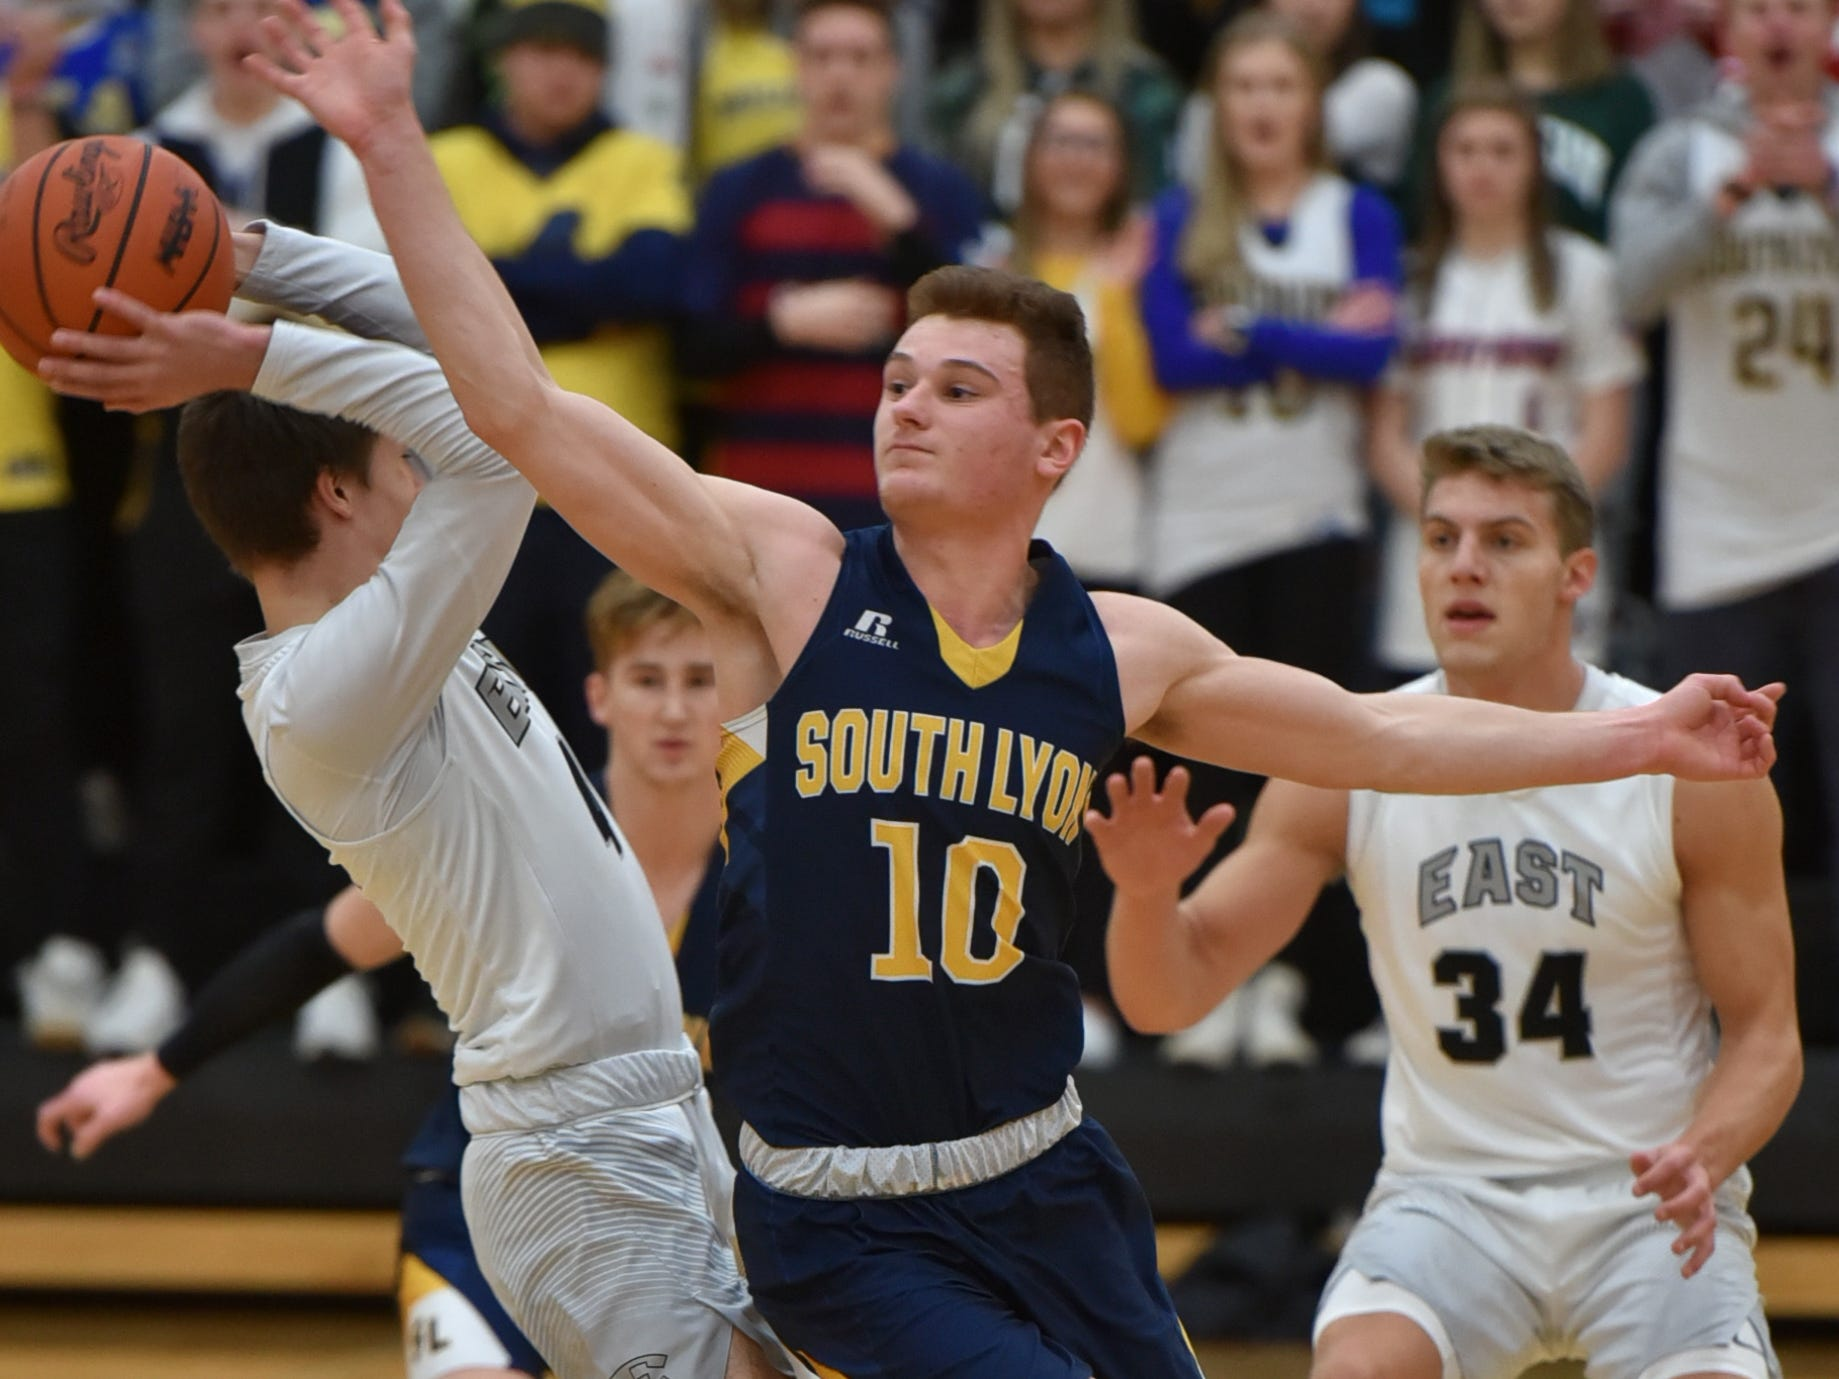 South Lyon Lion Owen Deline puts some pressure on South Lyon East Cougar Sean Clary, left.